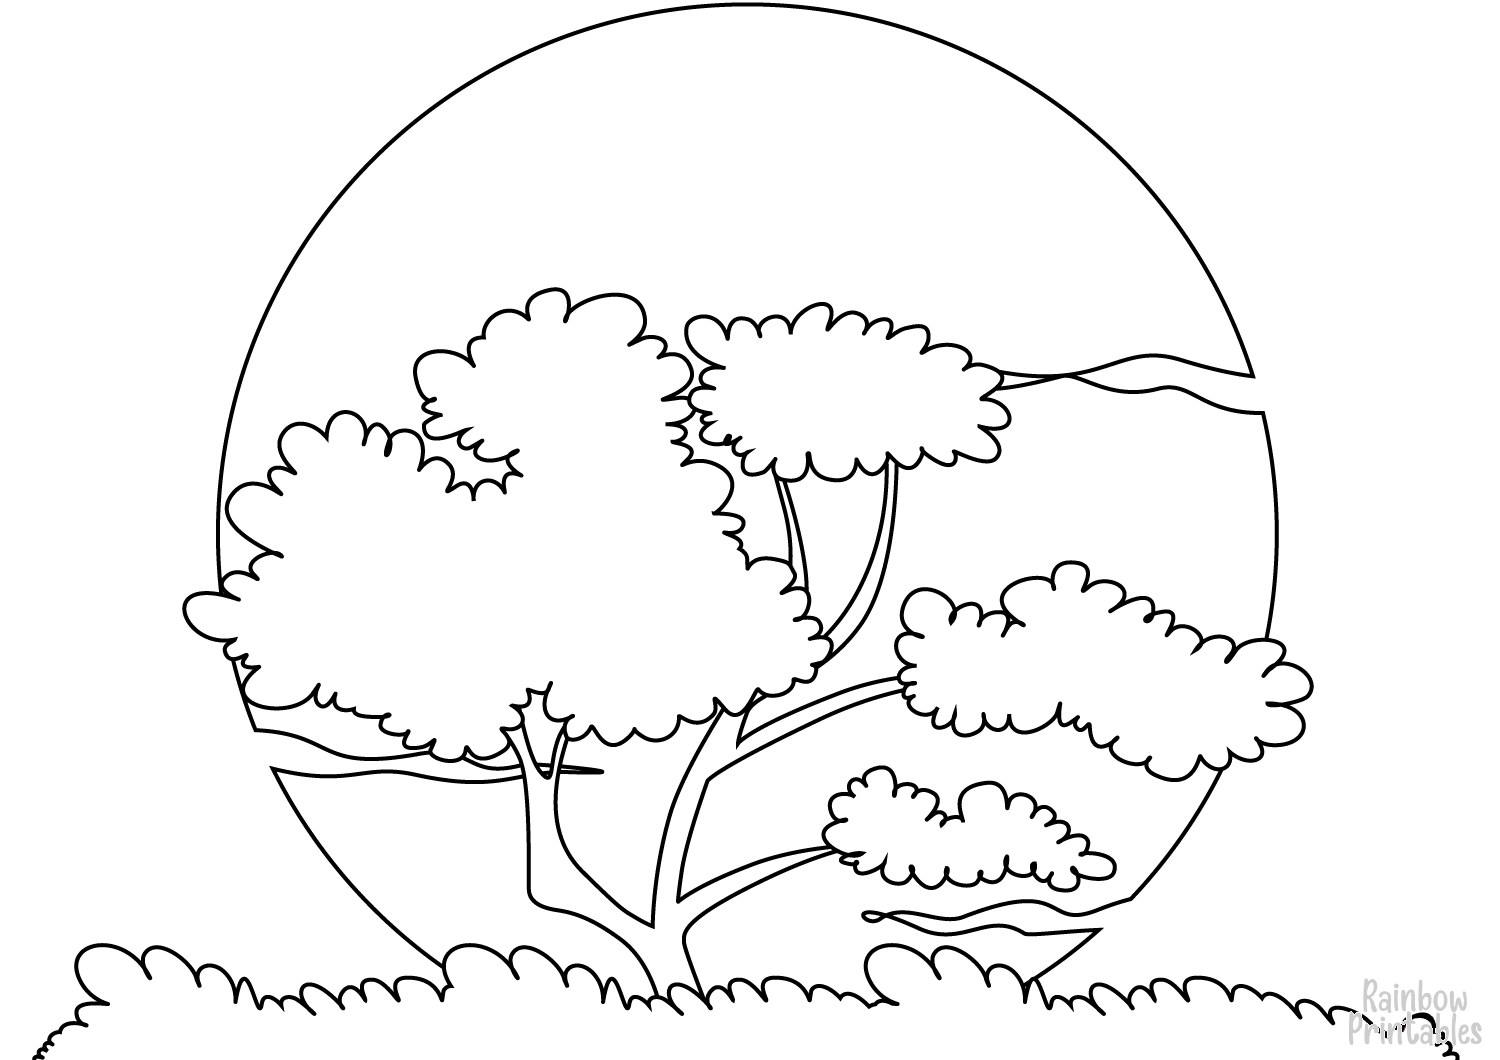 Free Scenery & Landscapes Coloring Pages